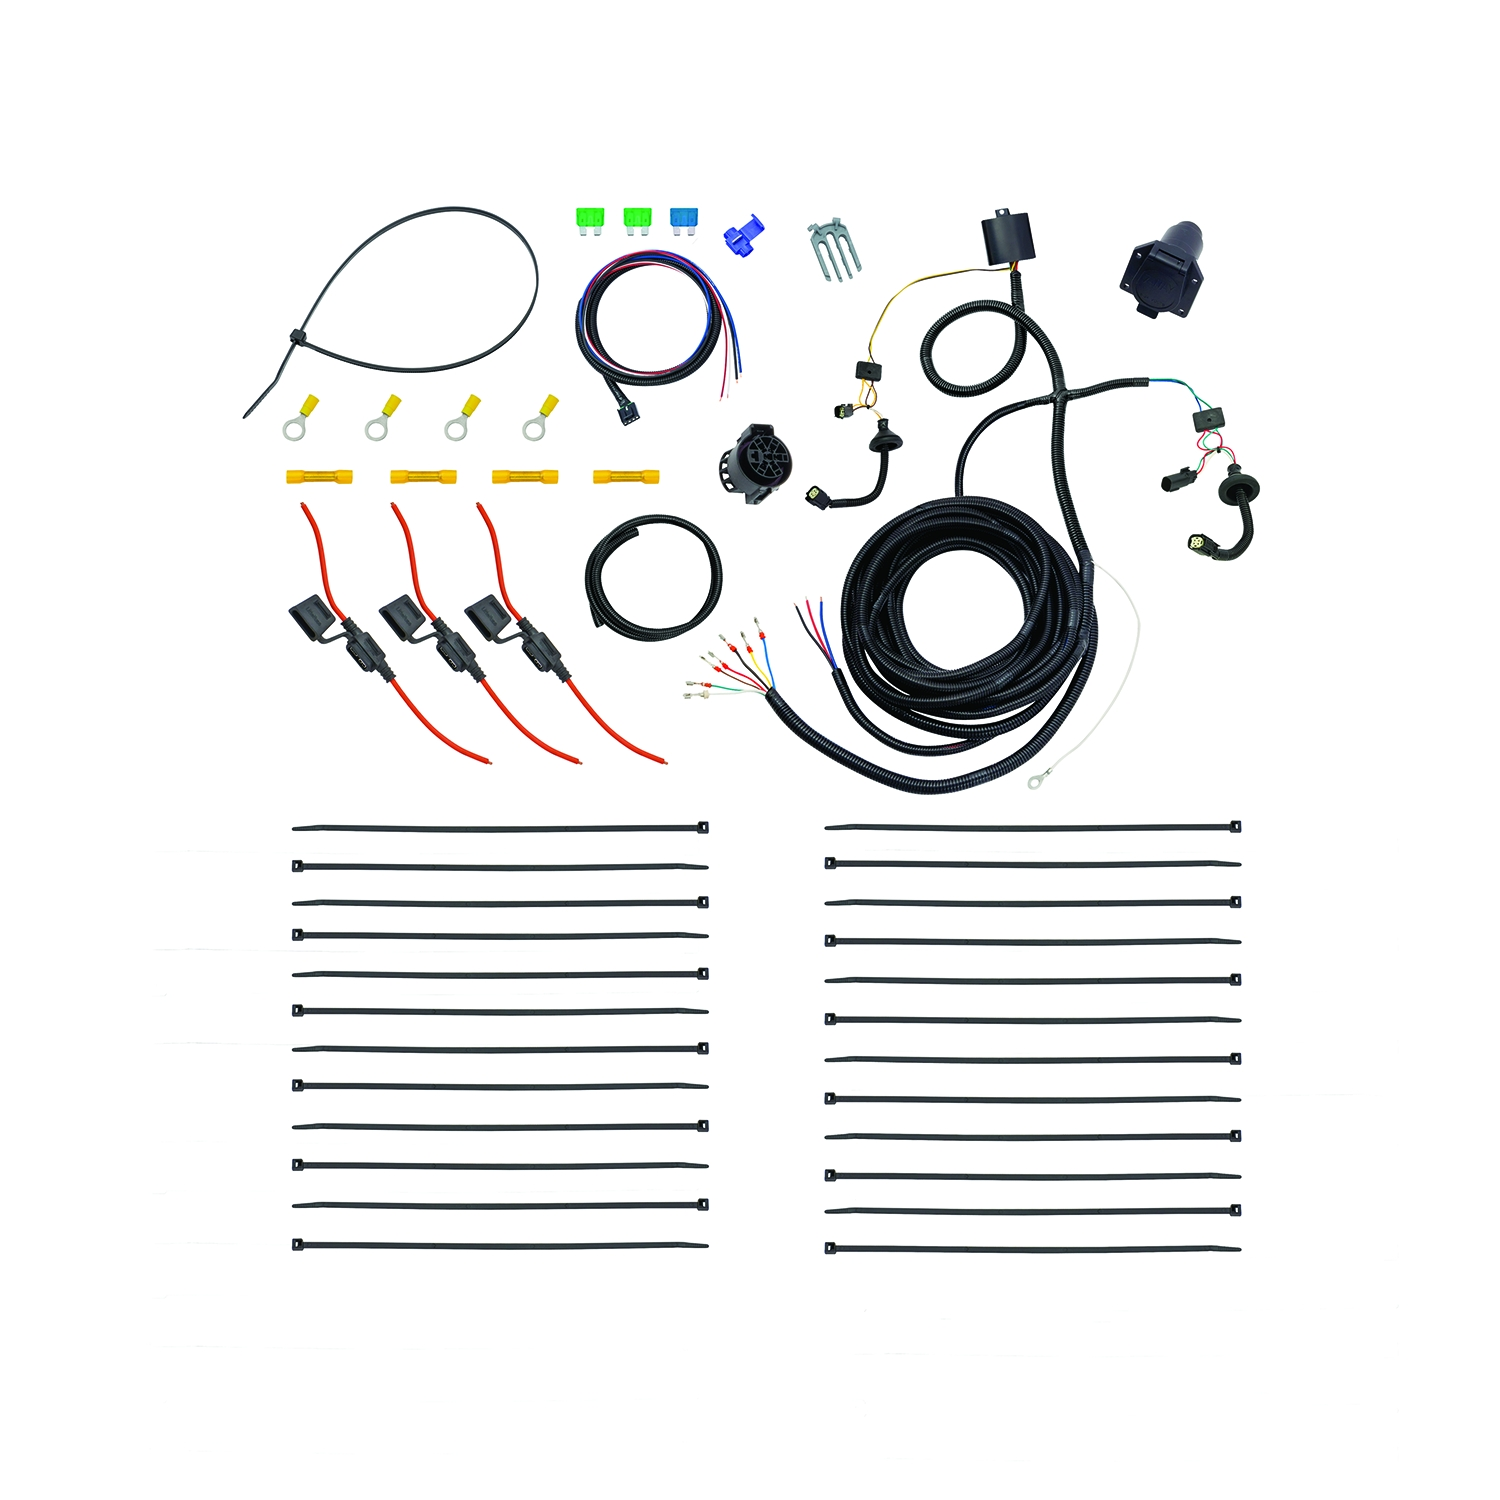 hight resolution of 22114 tekonsha trailer wiring connector oem tow package wiring harness